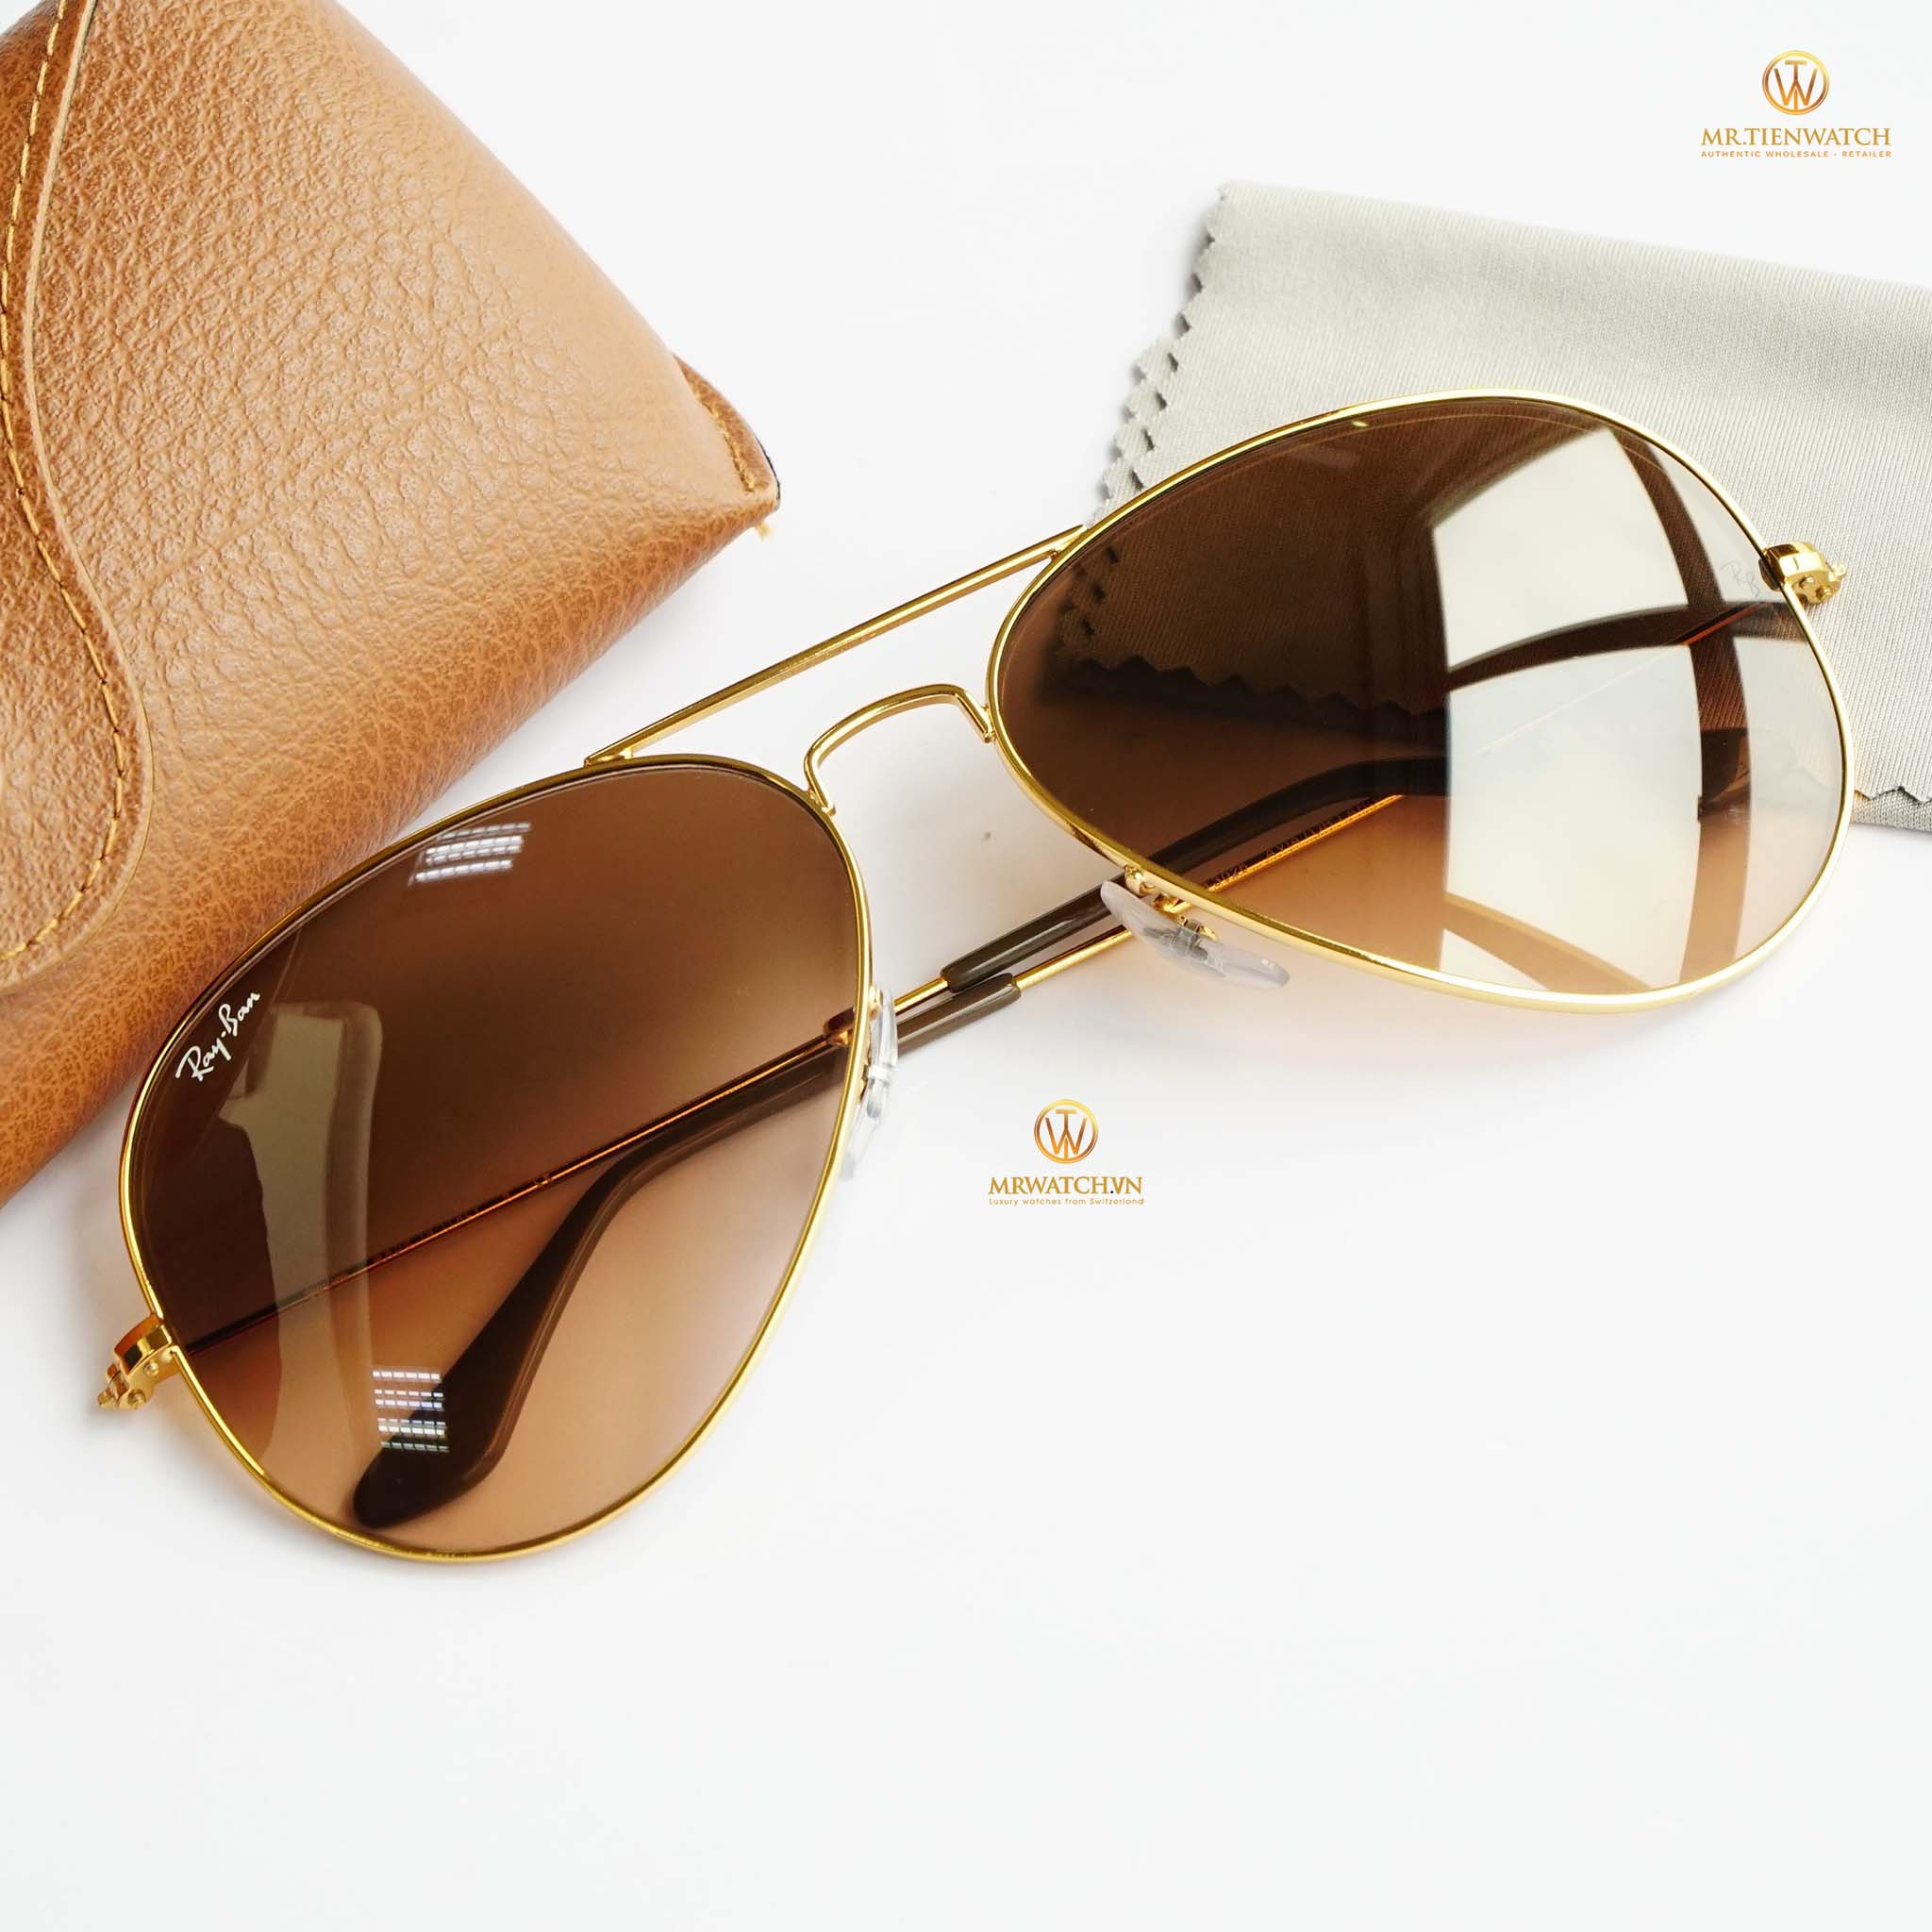 Kính mắt Ray Ban New 3025 Large metal Shiny rose gold light brown gradient RB 3025 9001A5 chính hãng